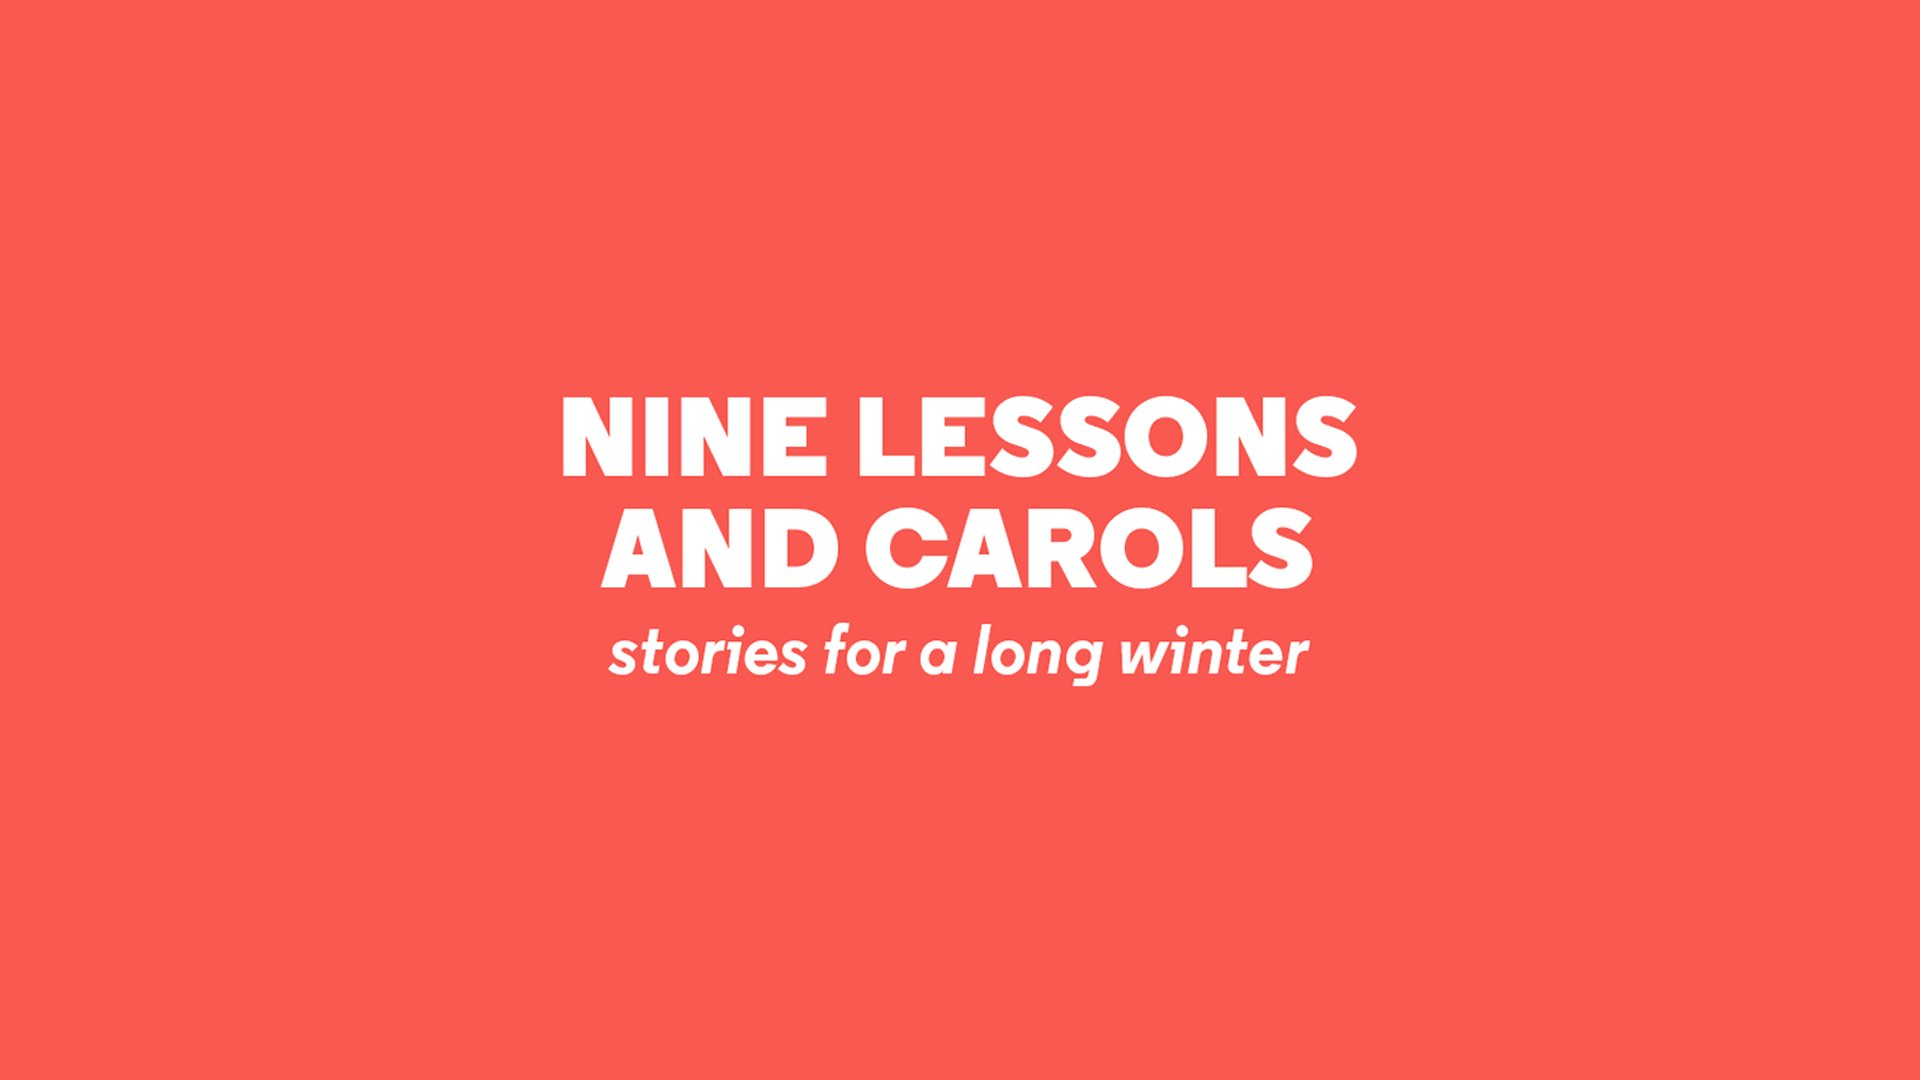 NINE LESSONS AND CAROLS: stories for a long winter